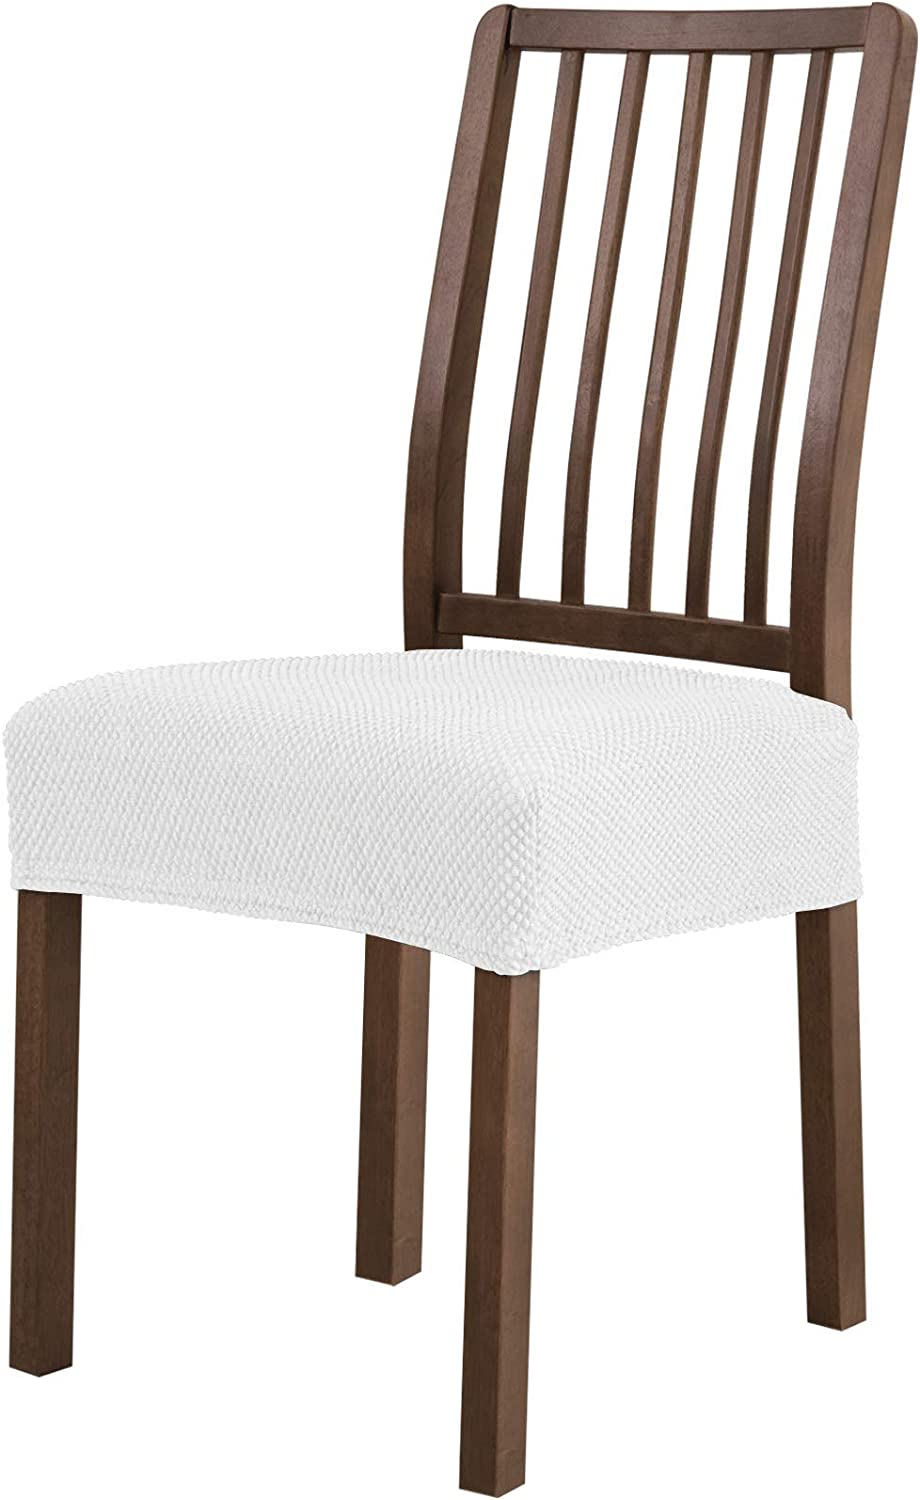 subrtex Dining Room Chair Seat Covers Stretch Chair Seat Cushion Slipcovers Furniture Protector Set of 2 Removable Washable for Dining Room Home Kitchen (White)